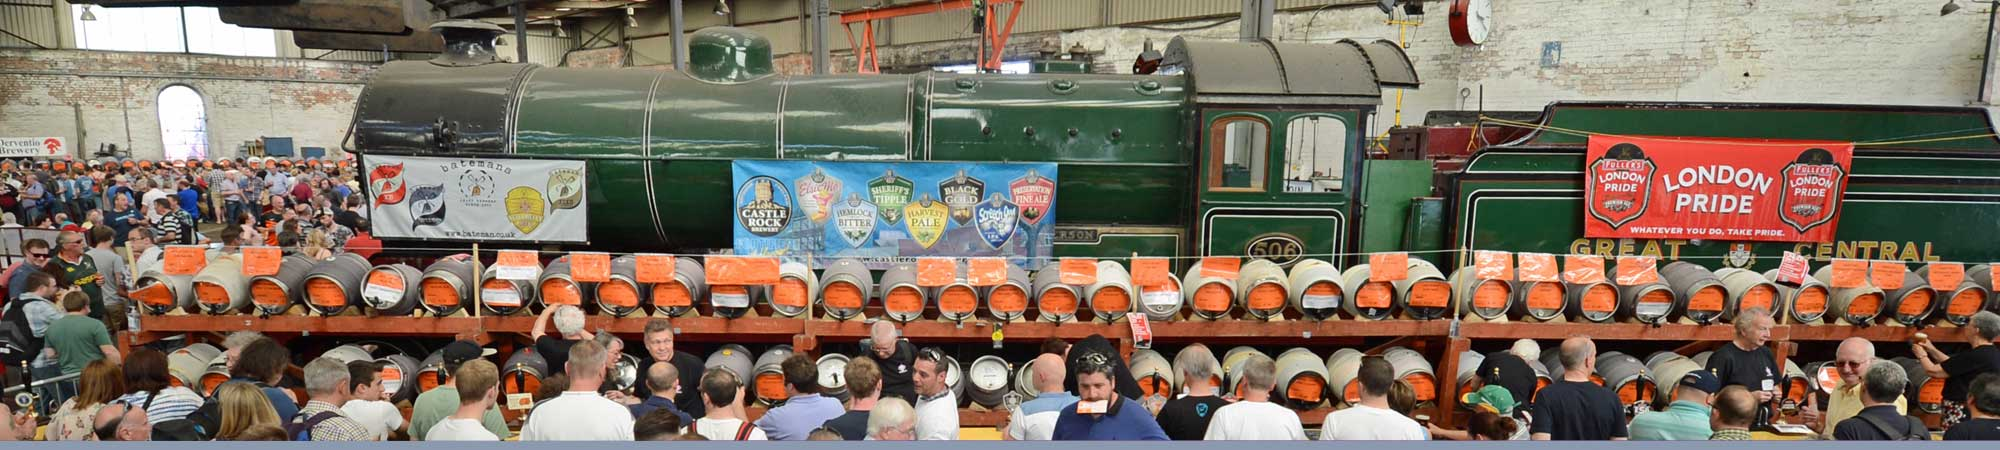 Rail Ale Festival, live music, train rides and more in Derbyshire